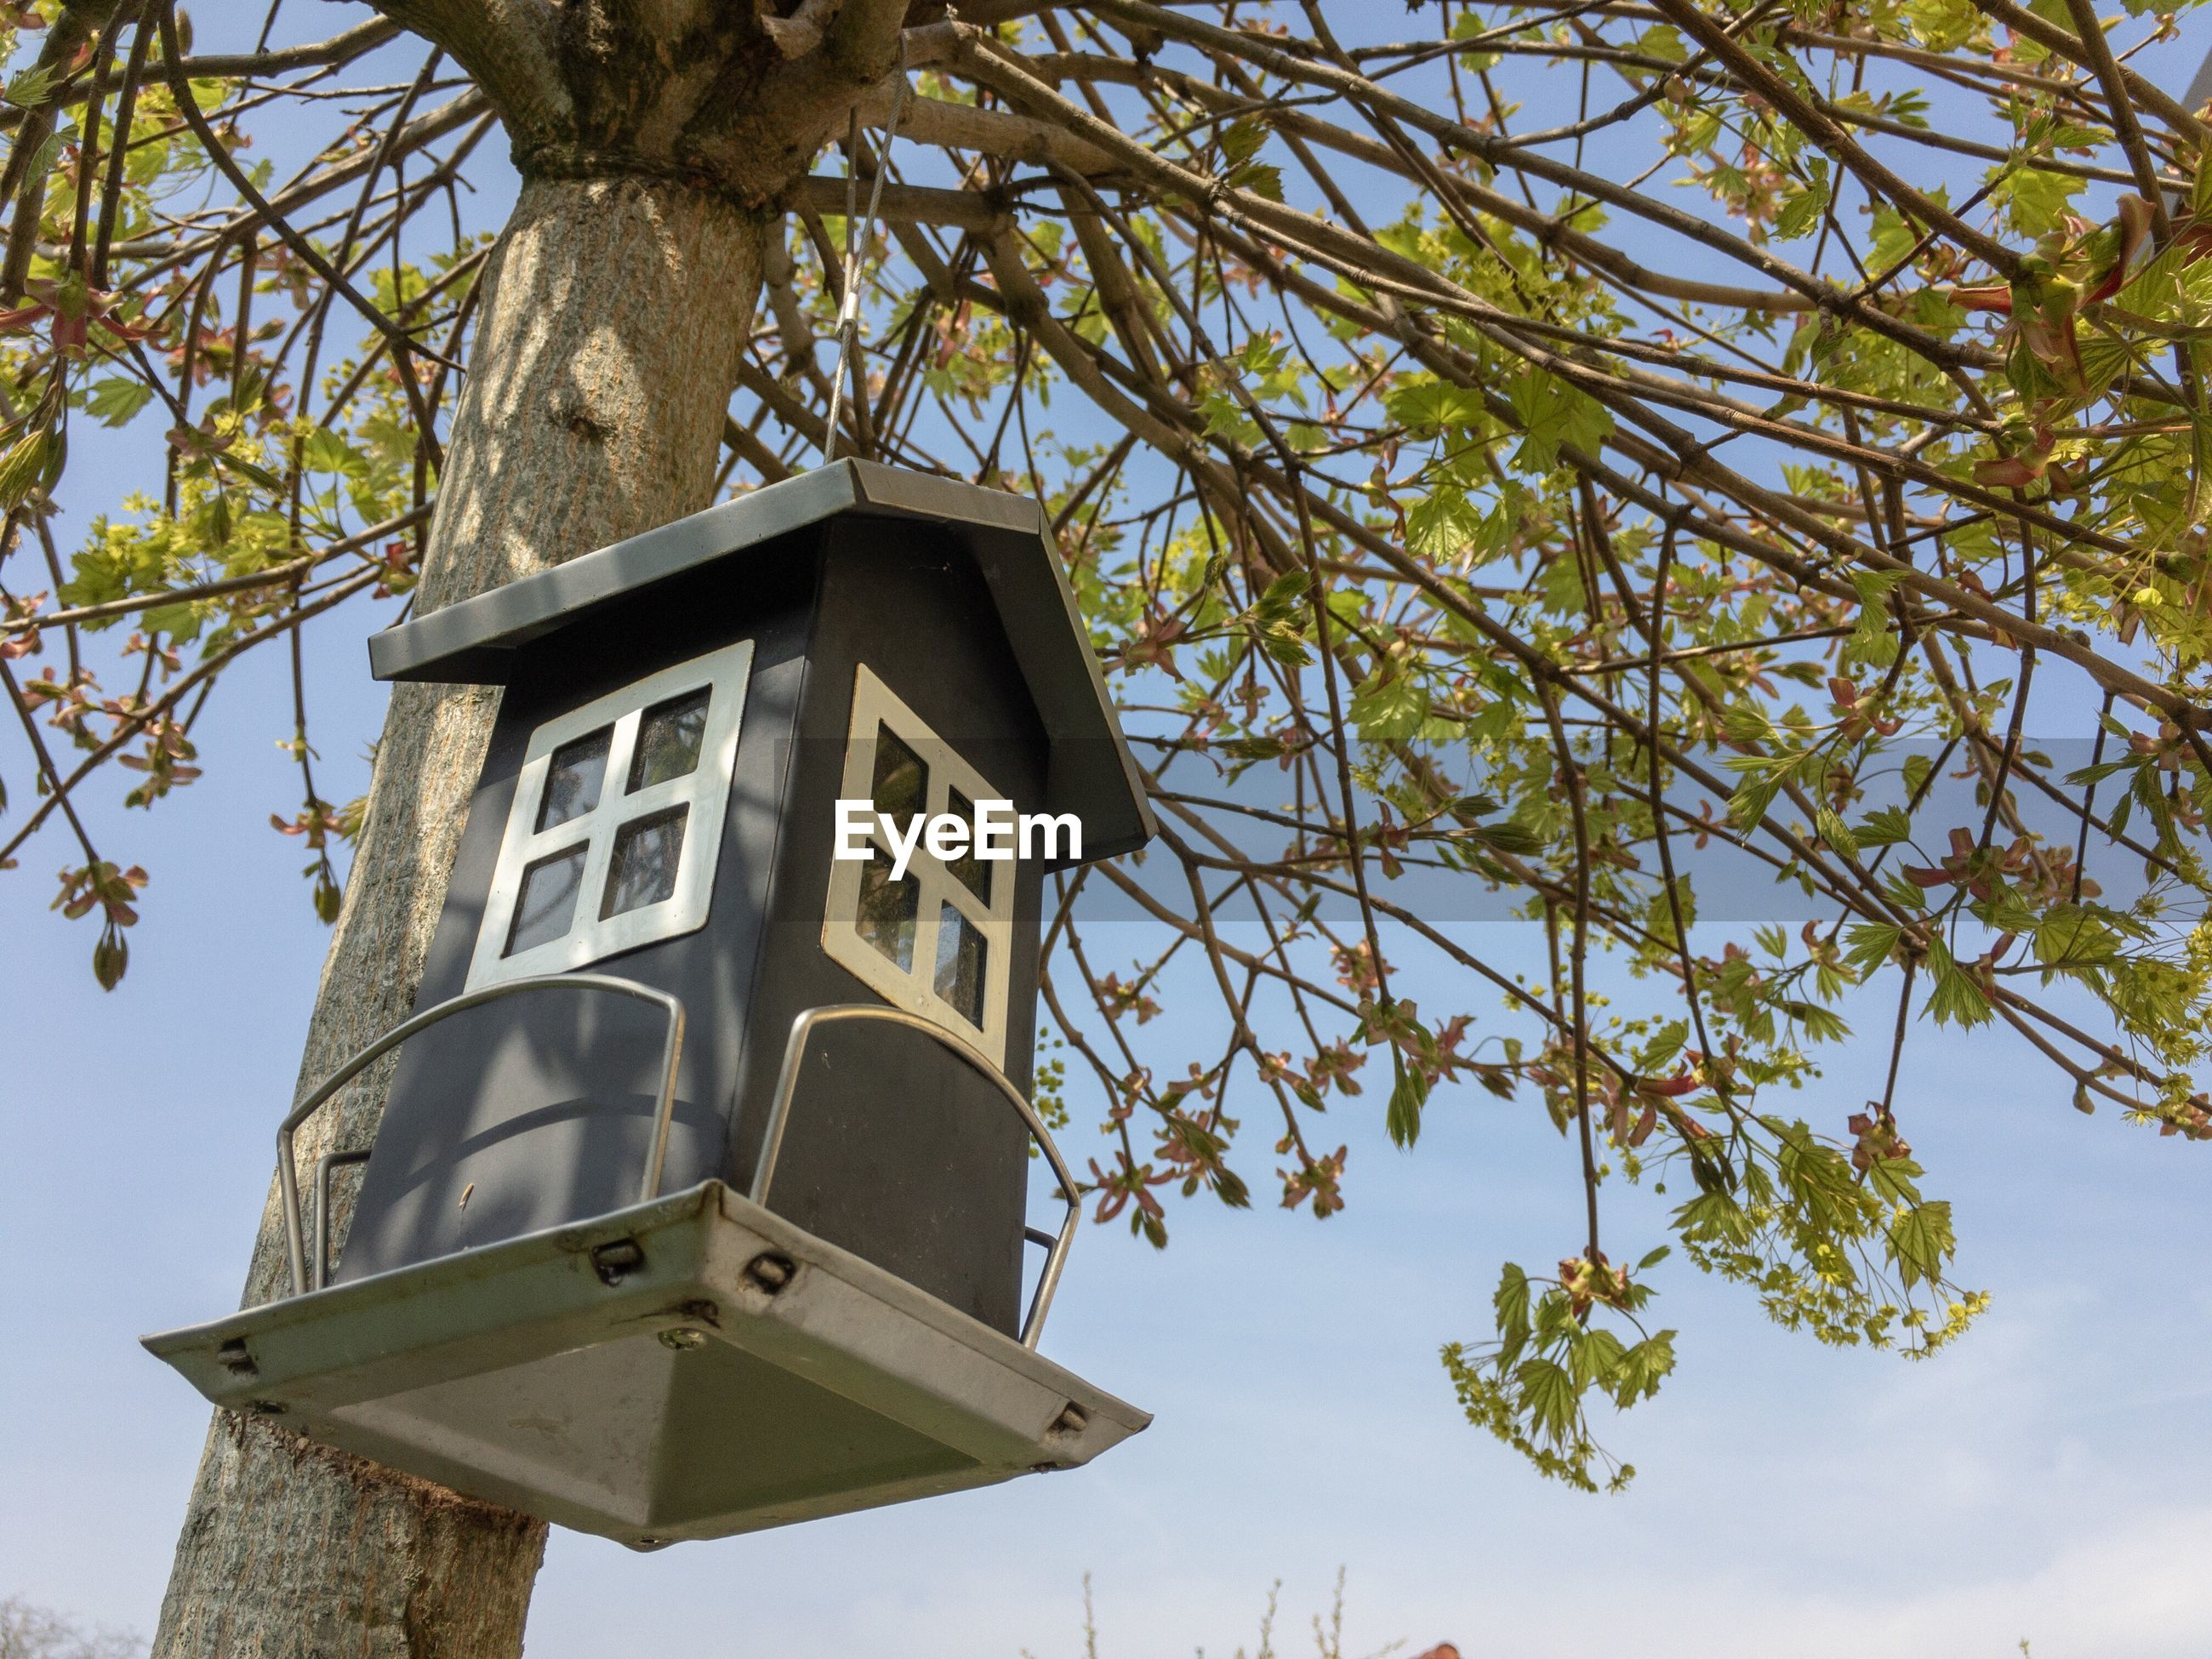 LOW ANGLE VIEW OF BIRDHOUSE HANGING AGAINST TREE